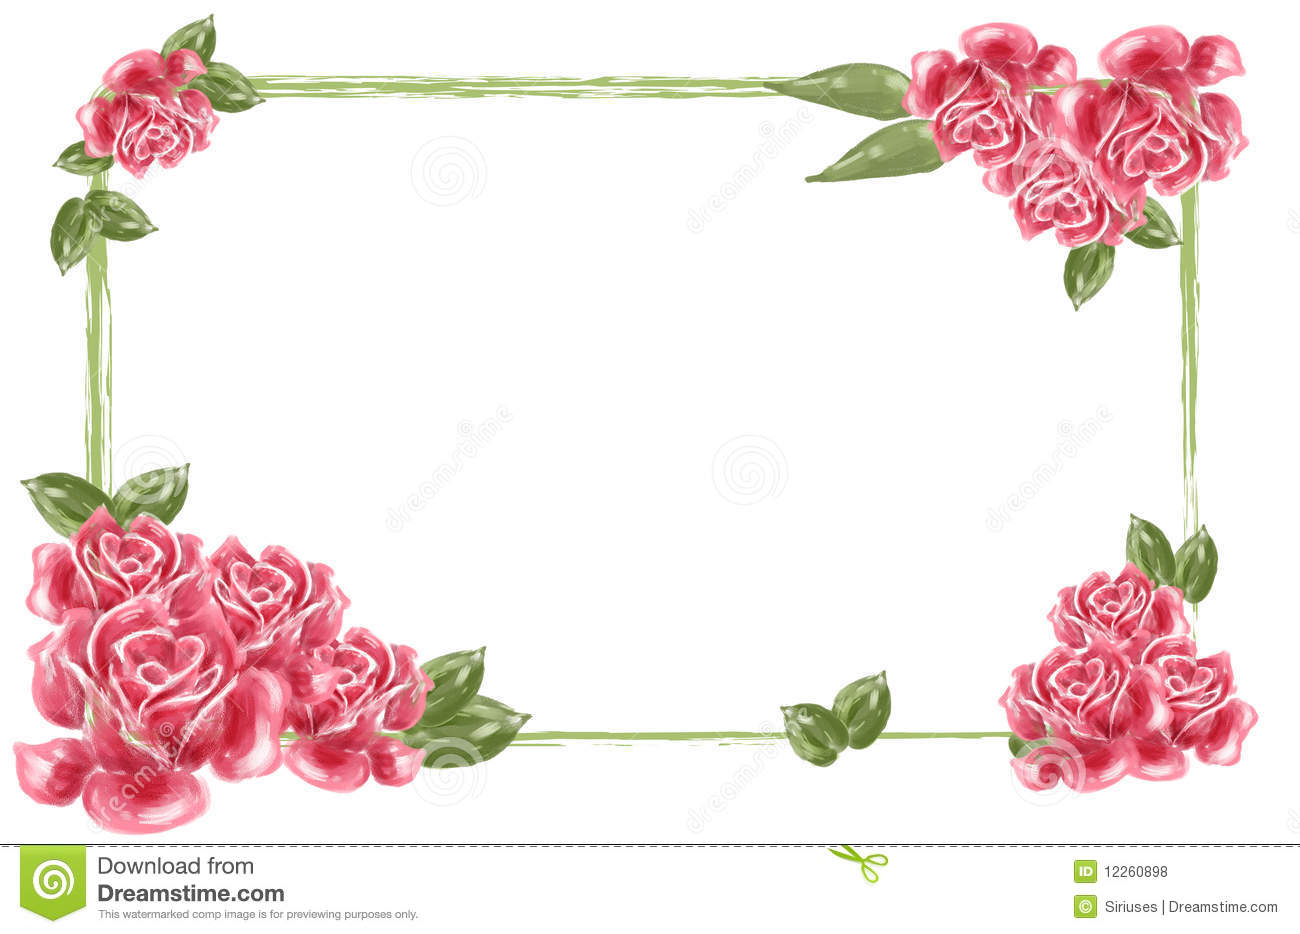 Red Flower Borders Clipart - Clipart Kid